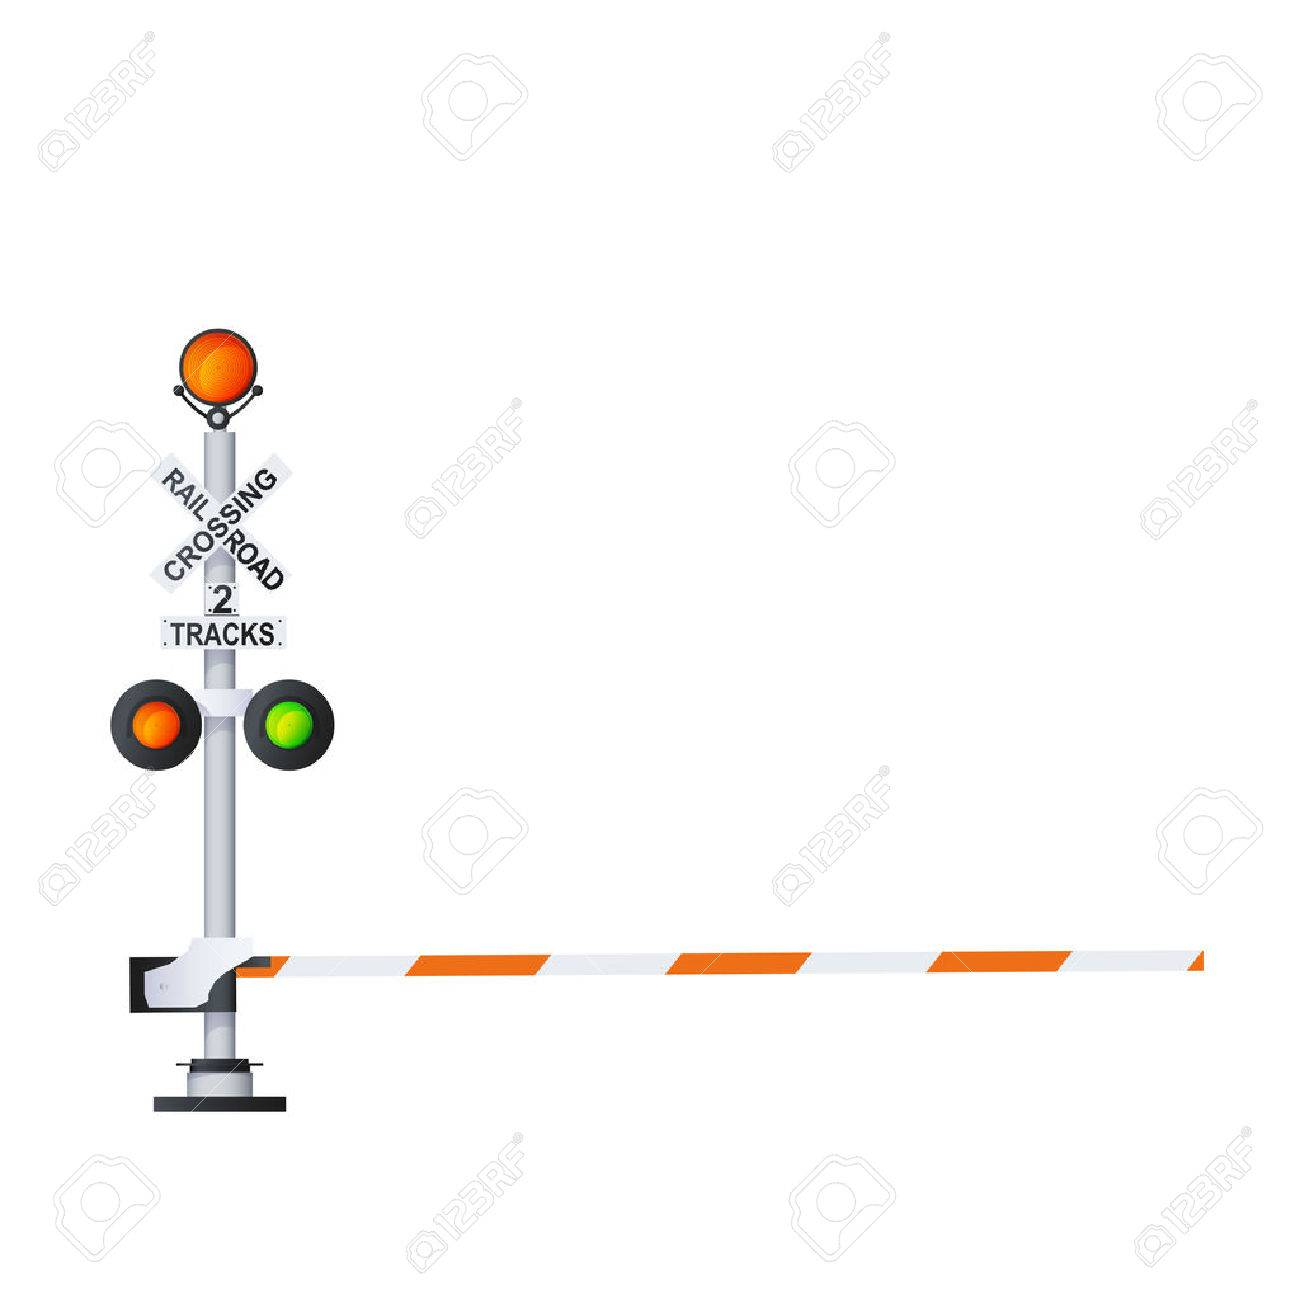 Railway Traffic Signal Color Vector Photo Realistic Illustration Isolated On White - 61706265